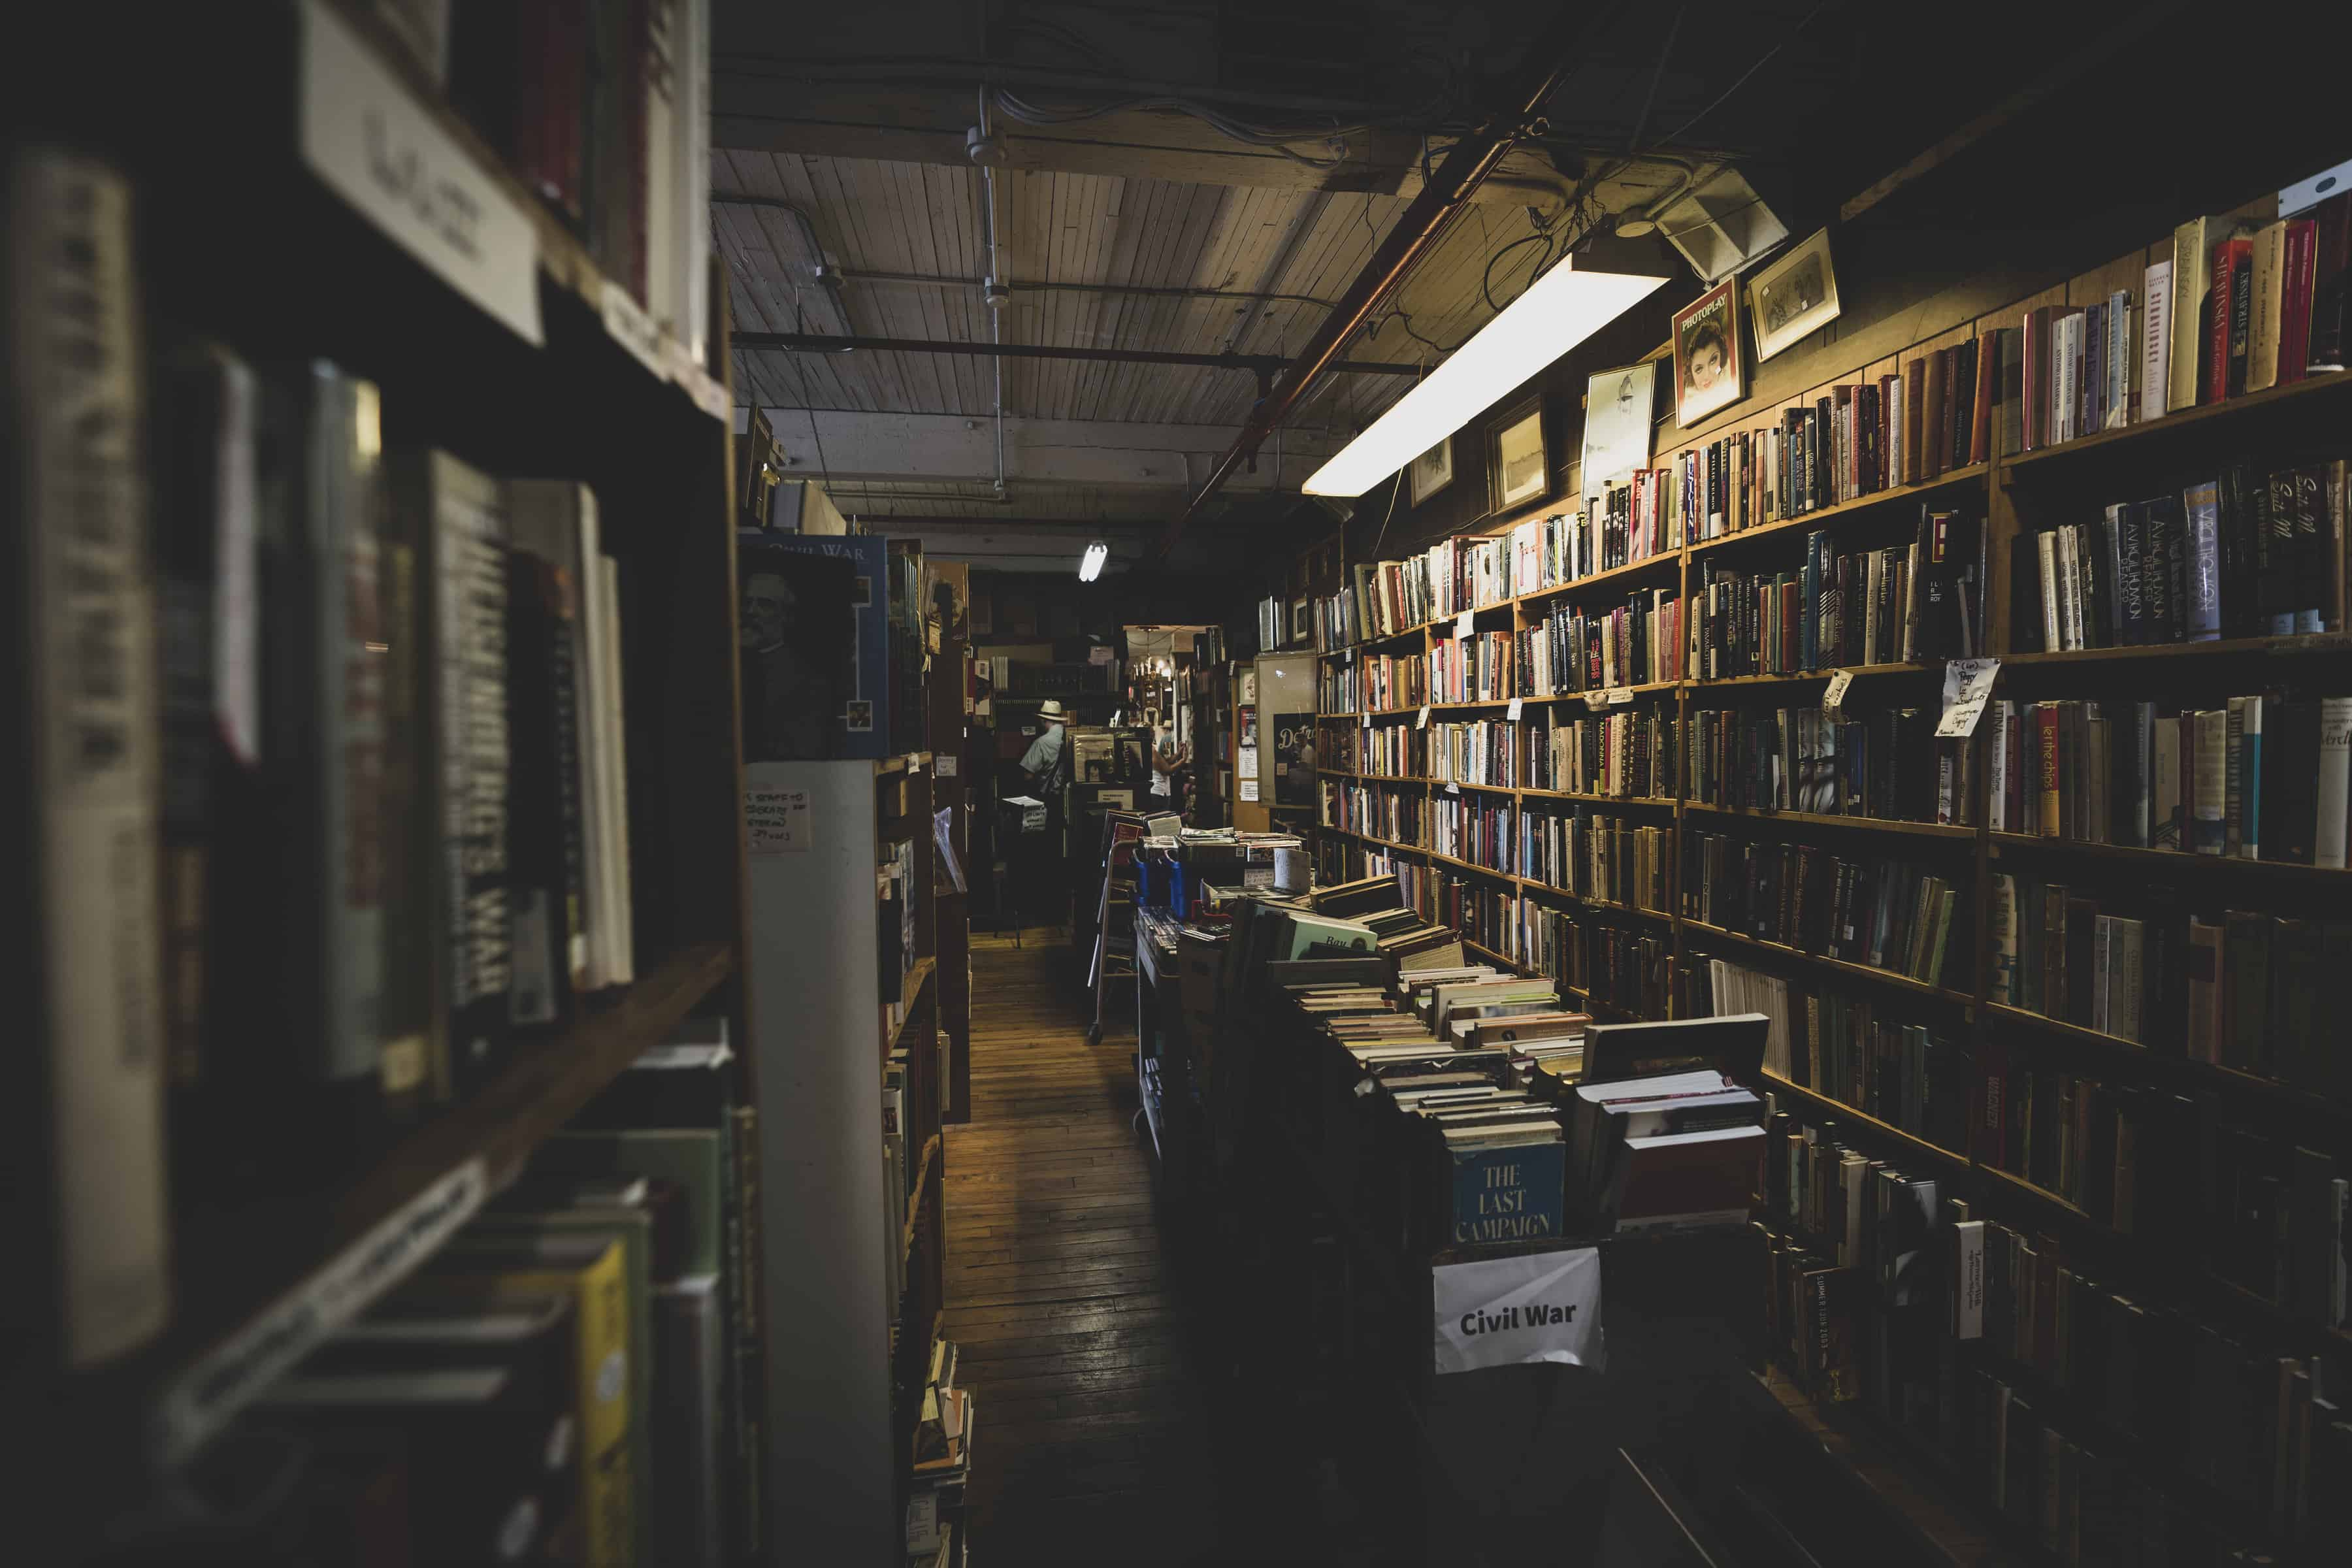 John K. King used and rare bookstore in Detroit, Michigan